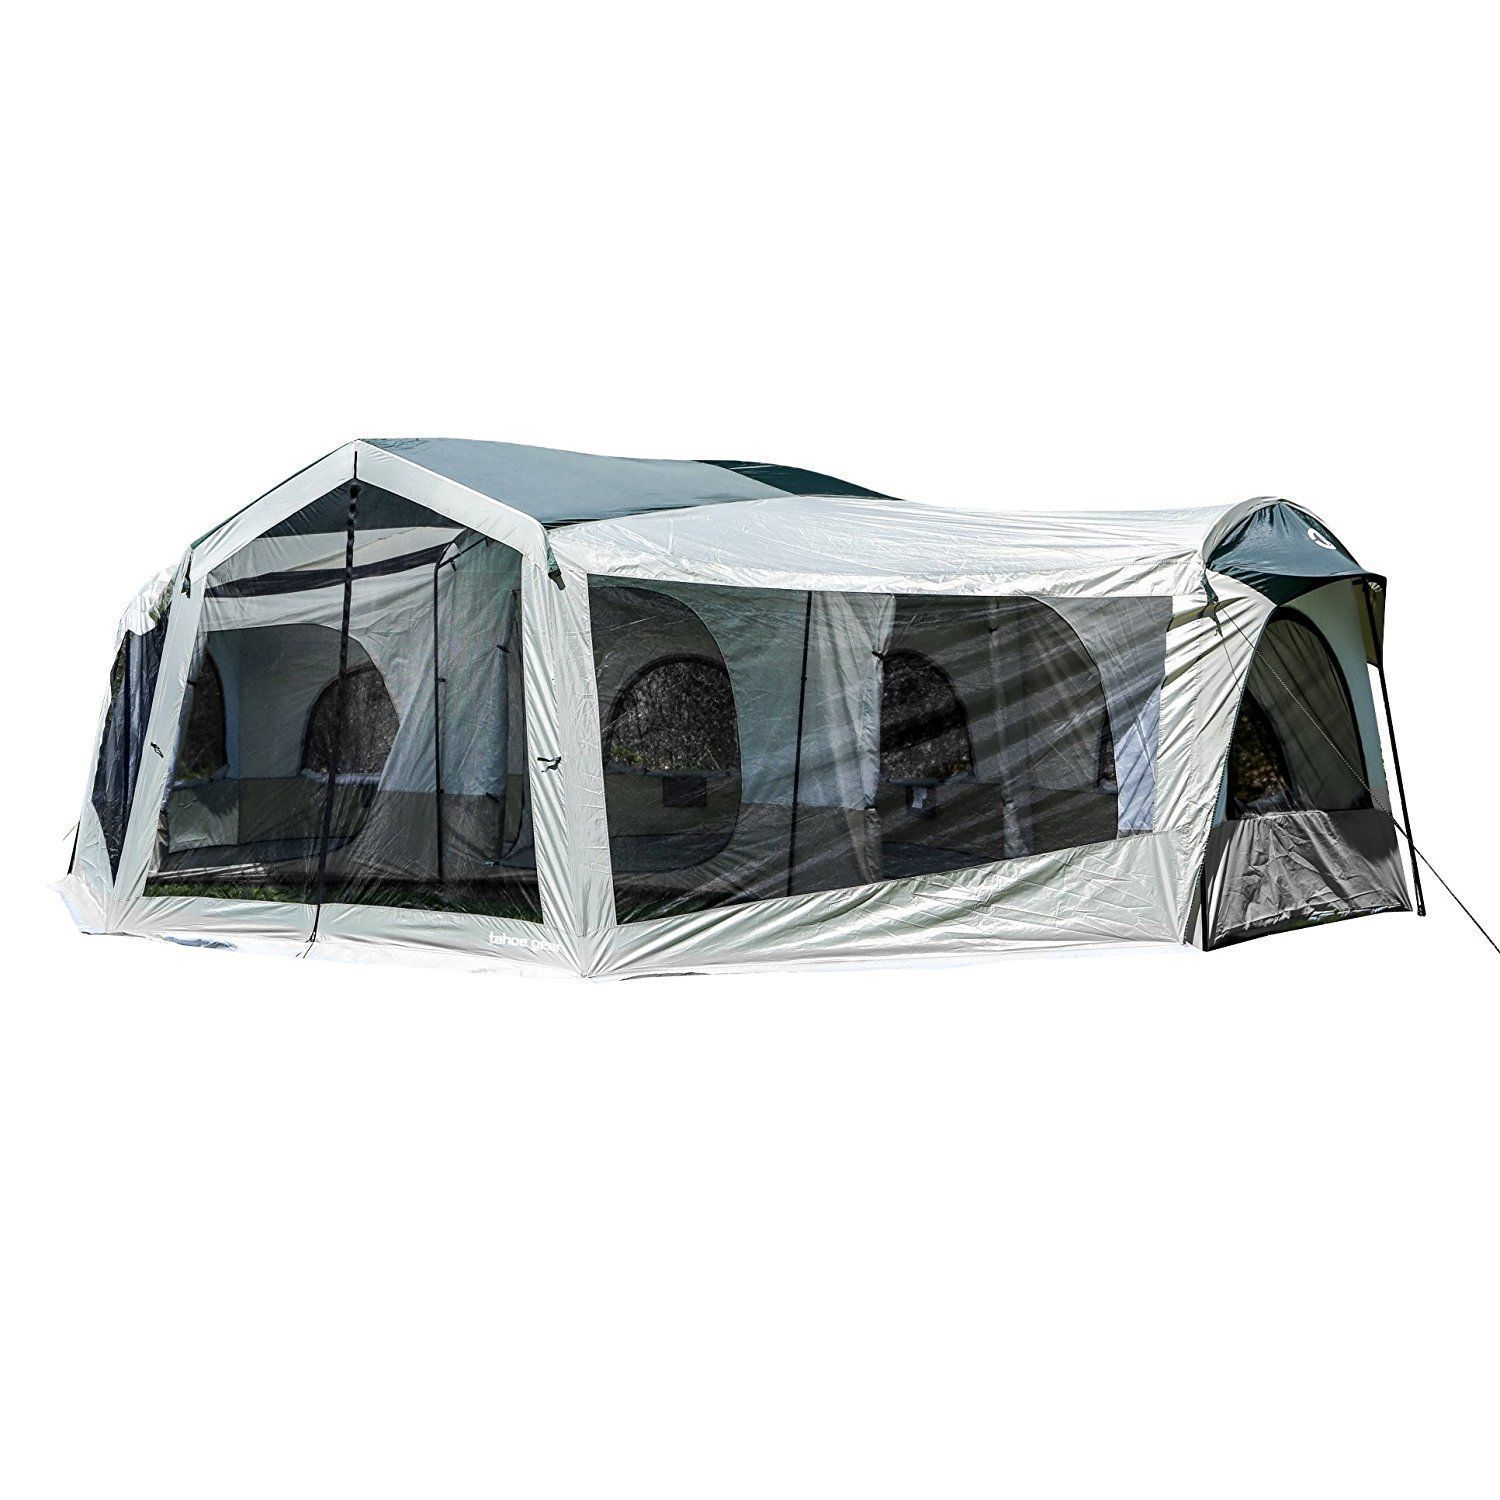 Tent Pop Up Tent Tents For Sale Camping Tents Coleman Tents Camping Gear Camping Equipment Camping Stove Camping Store Best Family Tent Cabin Tent Family Tent